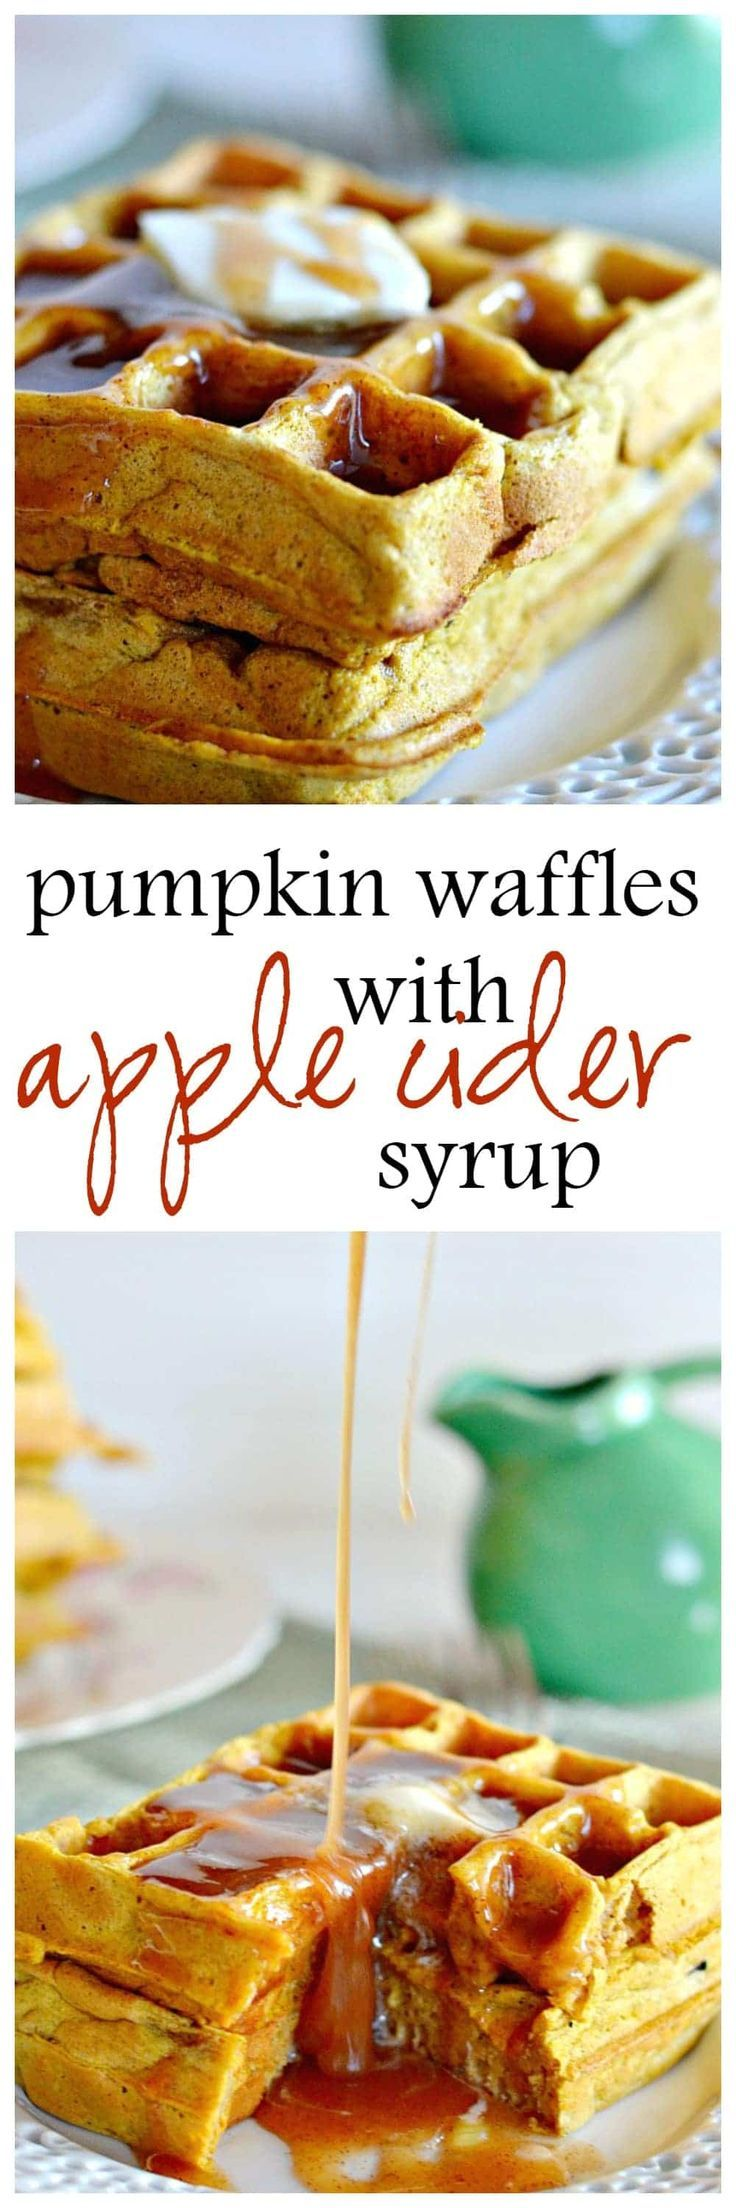 Combine two favorite fall flavors--pumpkin and apple cider--for a comforting, decadent breakfast for a special morning. The syrup alone is out of this world! | pumpkin waffles | homemade breakfast | breakfast recipes | pumpkin recipes | breakfast and brun